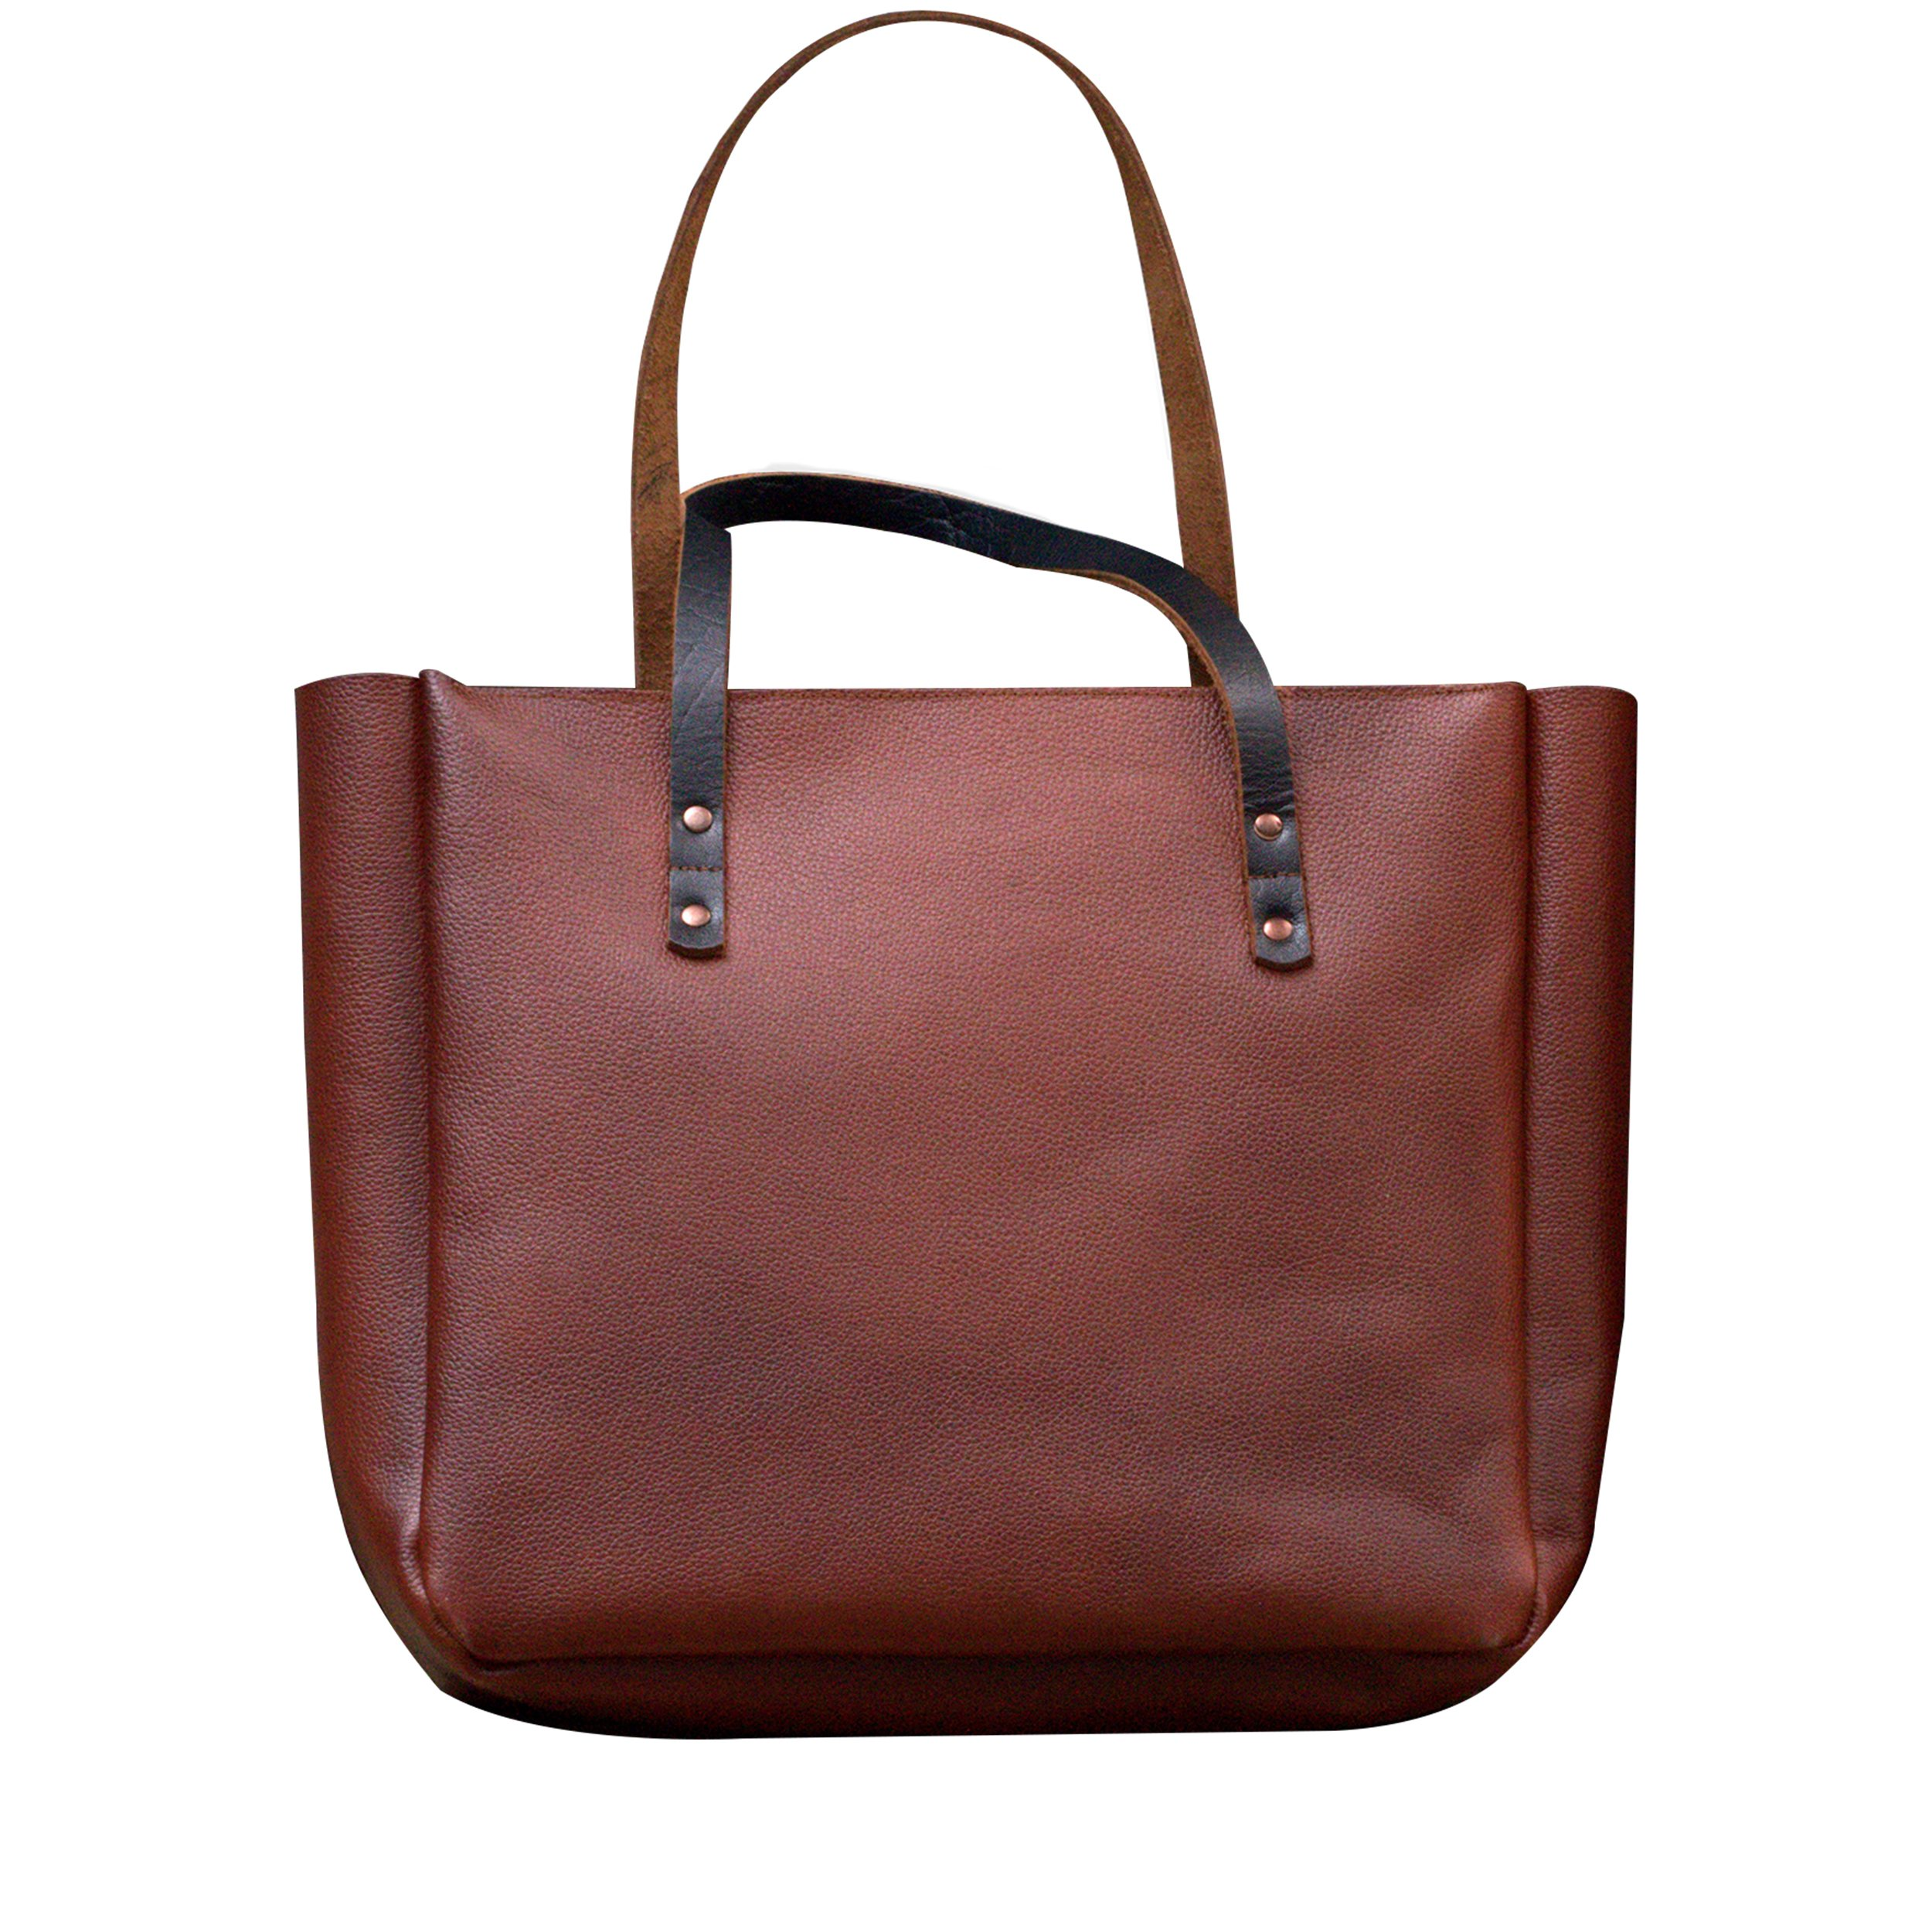 MONT5 KEL Brown Leather Tote Bag With Zipper For Women Shopper Travel Fashion